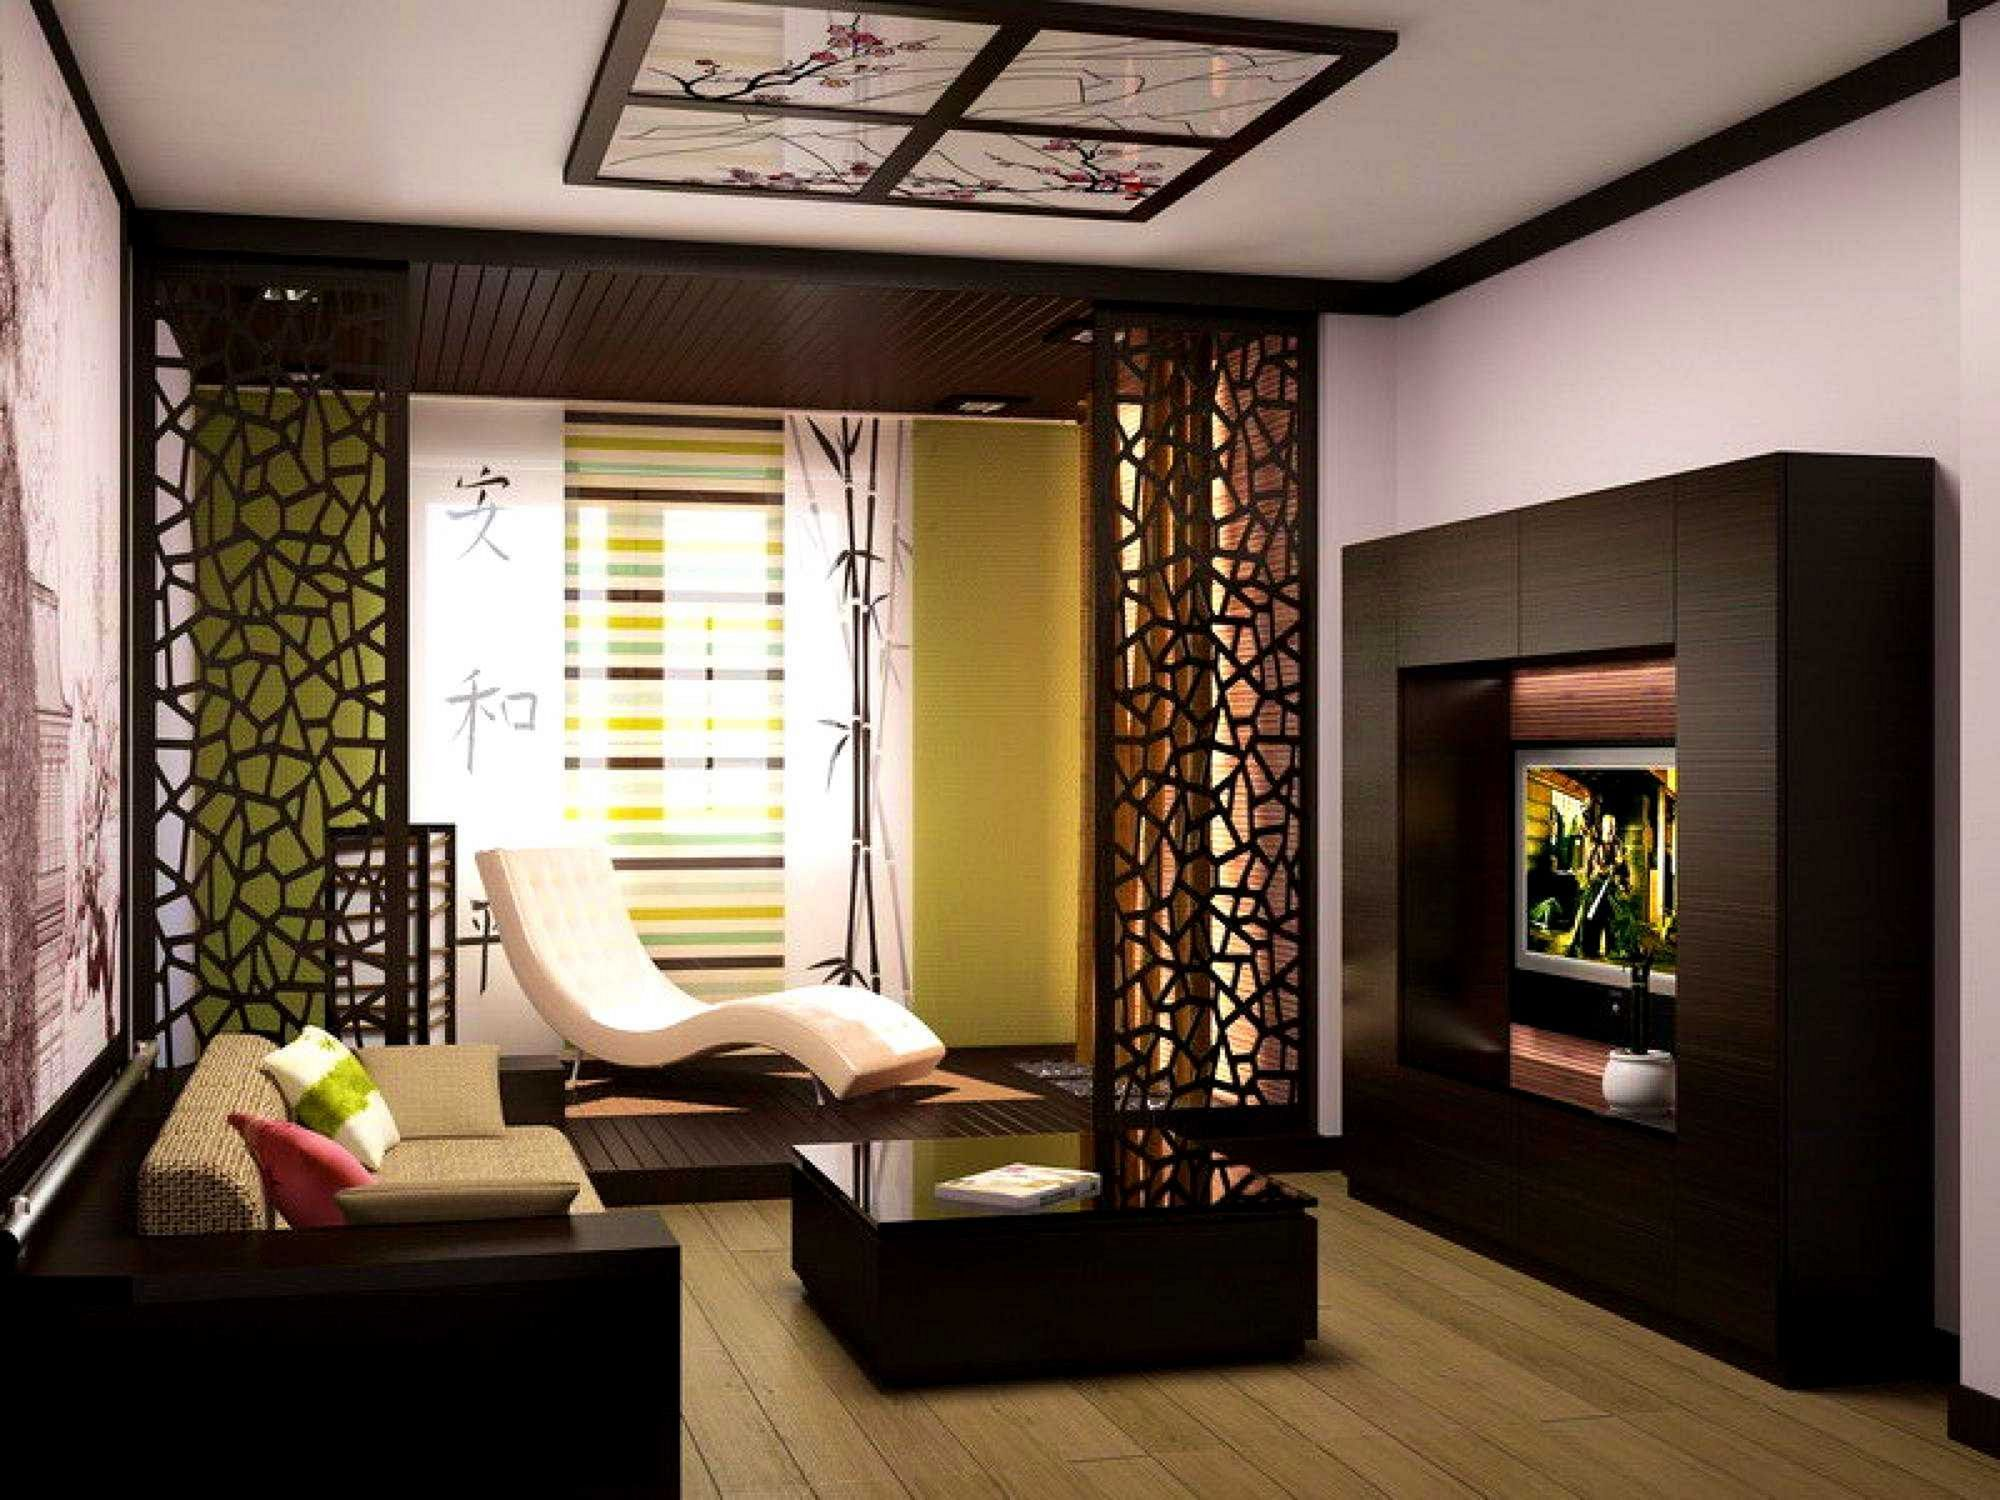 15 Fabulous Living Room Divider Ideas For Small Space In 2020